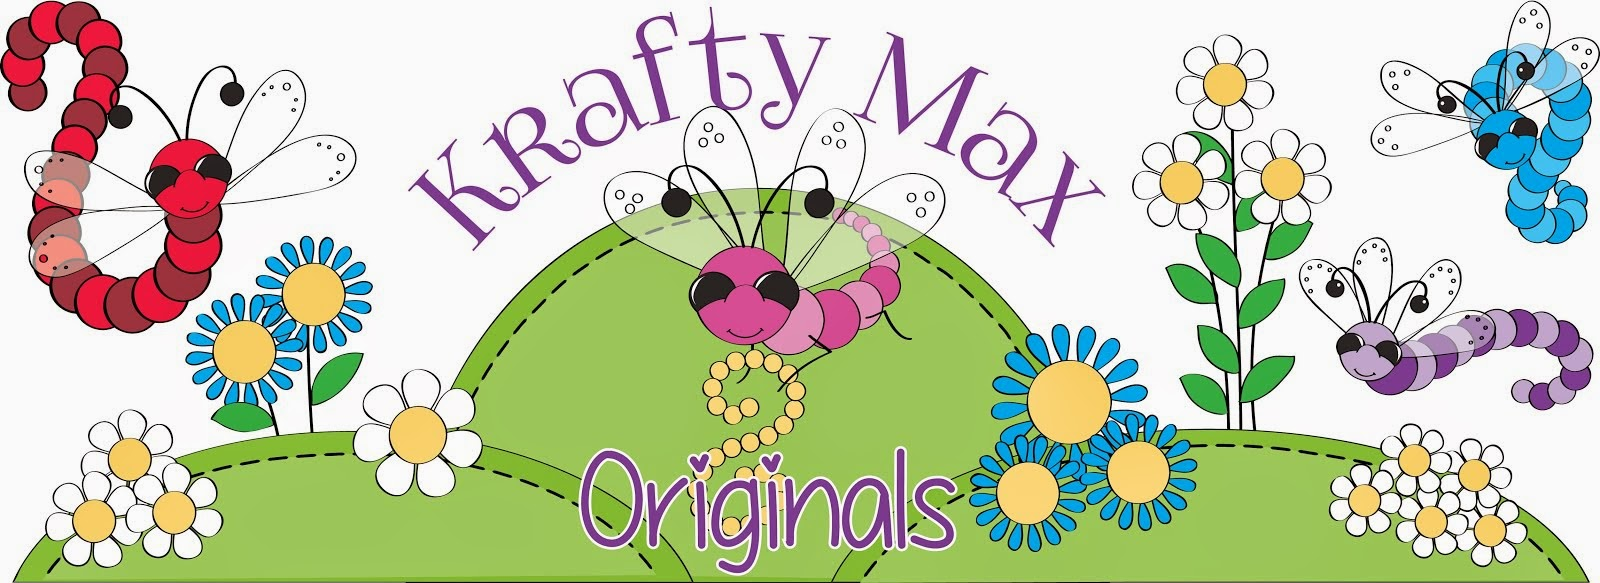 Krafty Max Originals